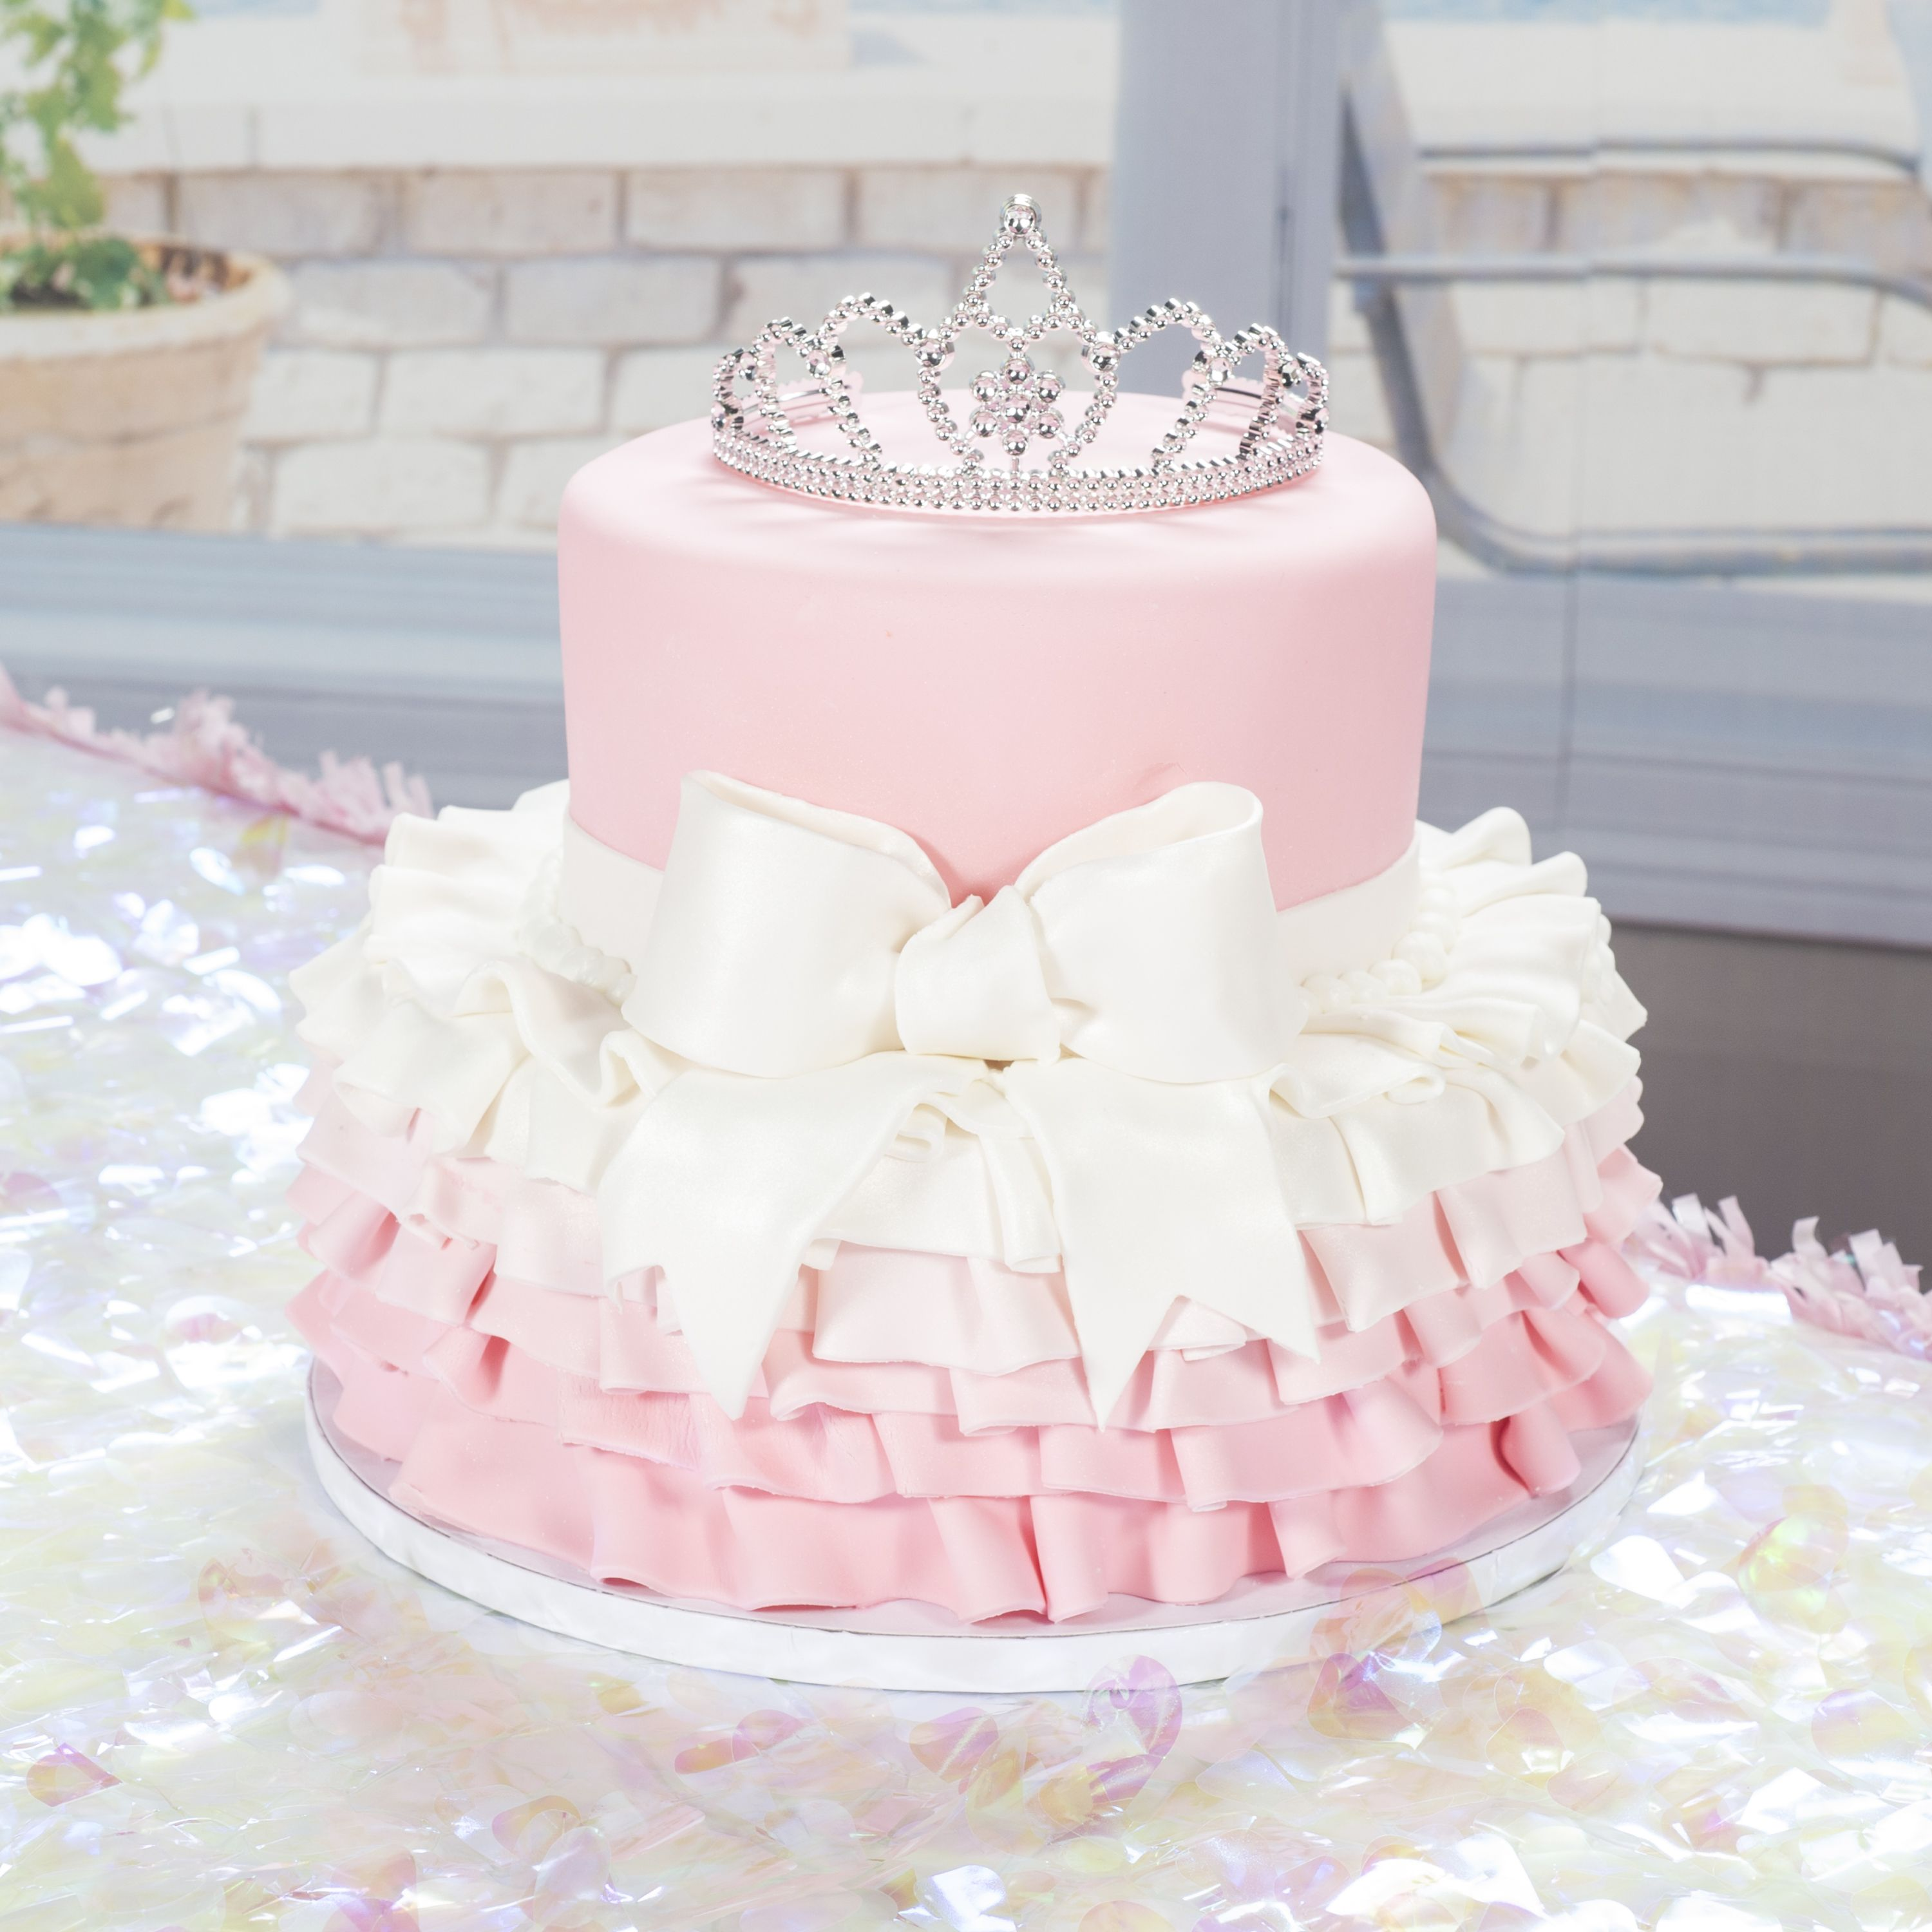 This Princess Cake Is Topped With A Tiara From Shindigz Reveal